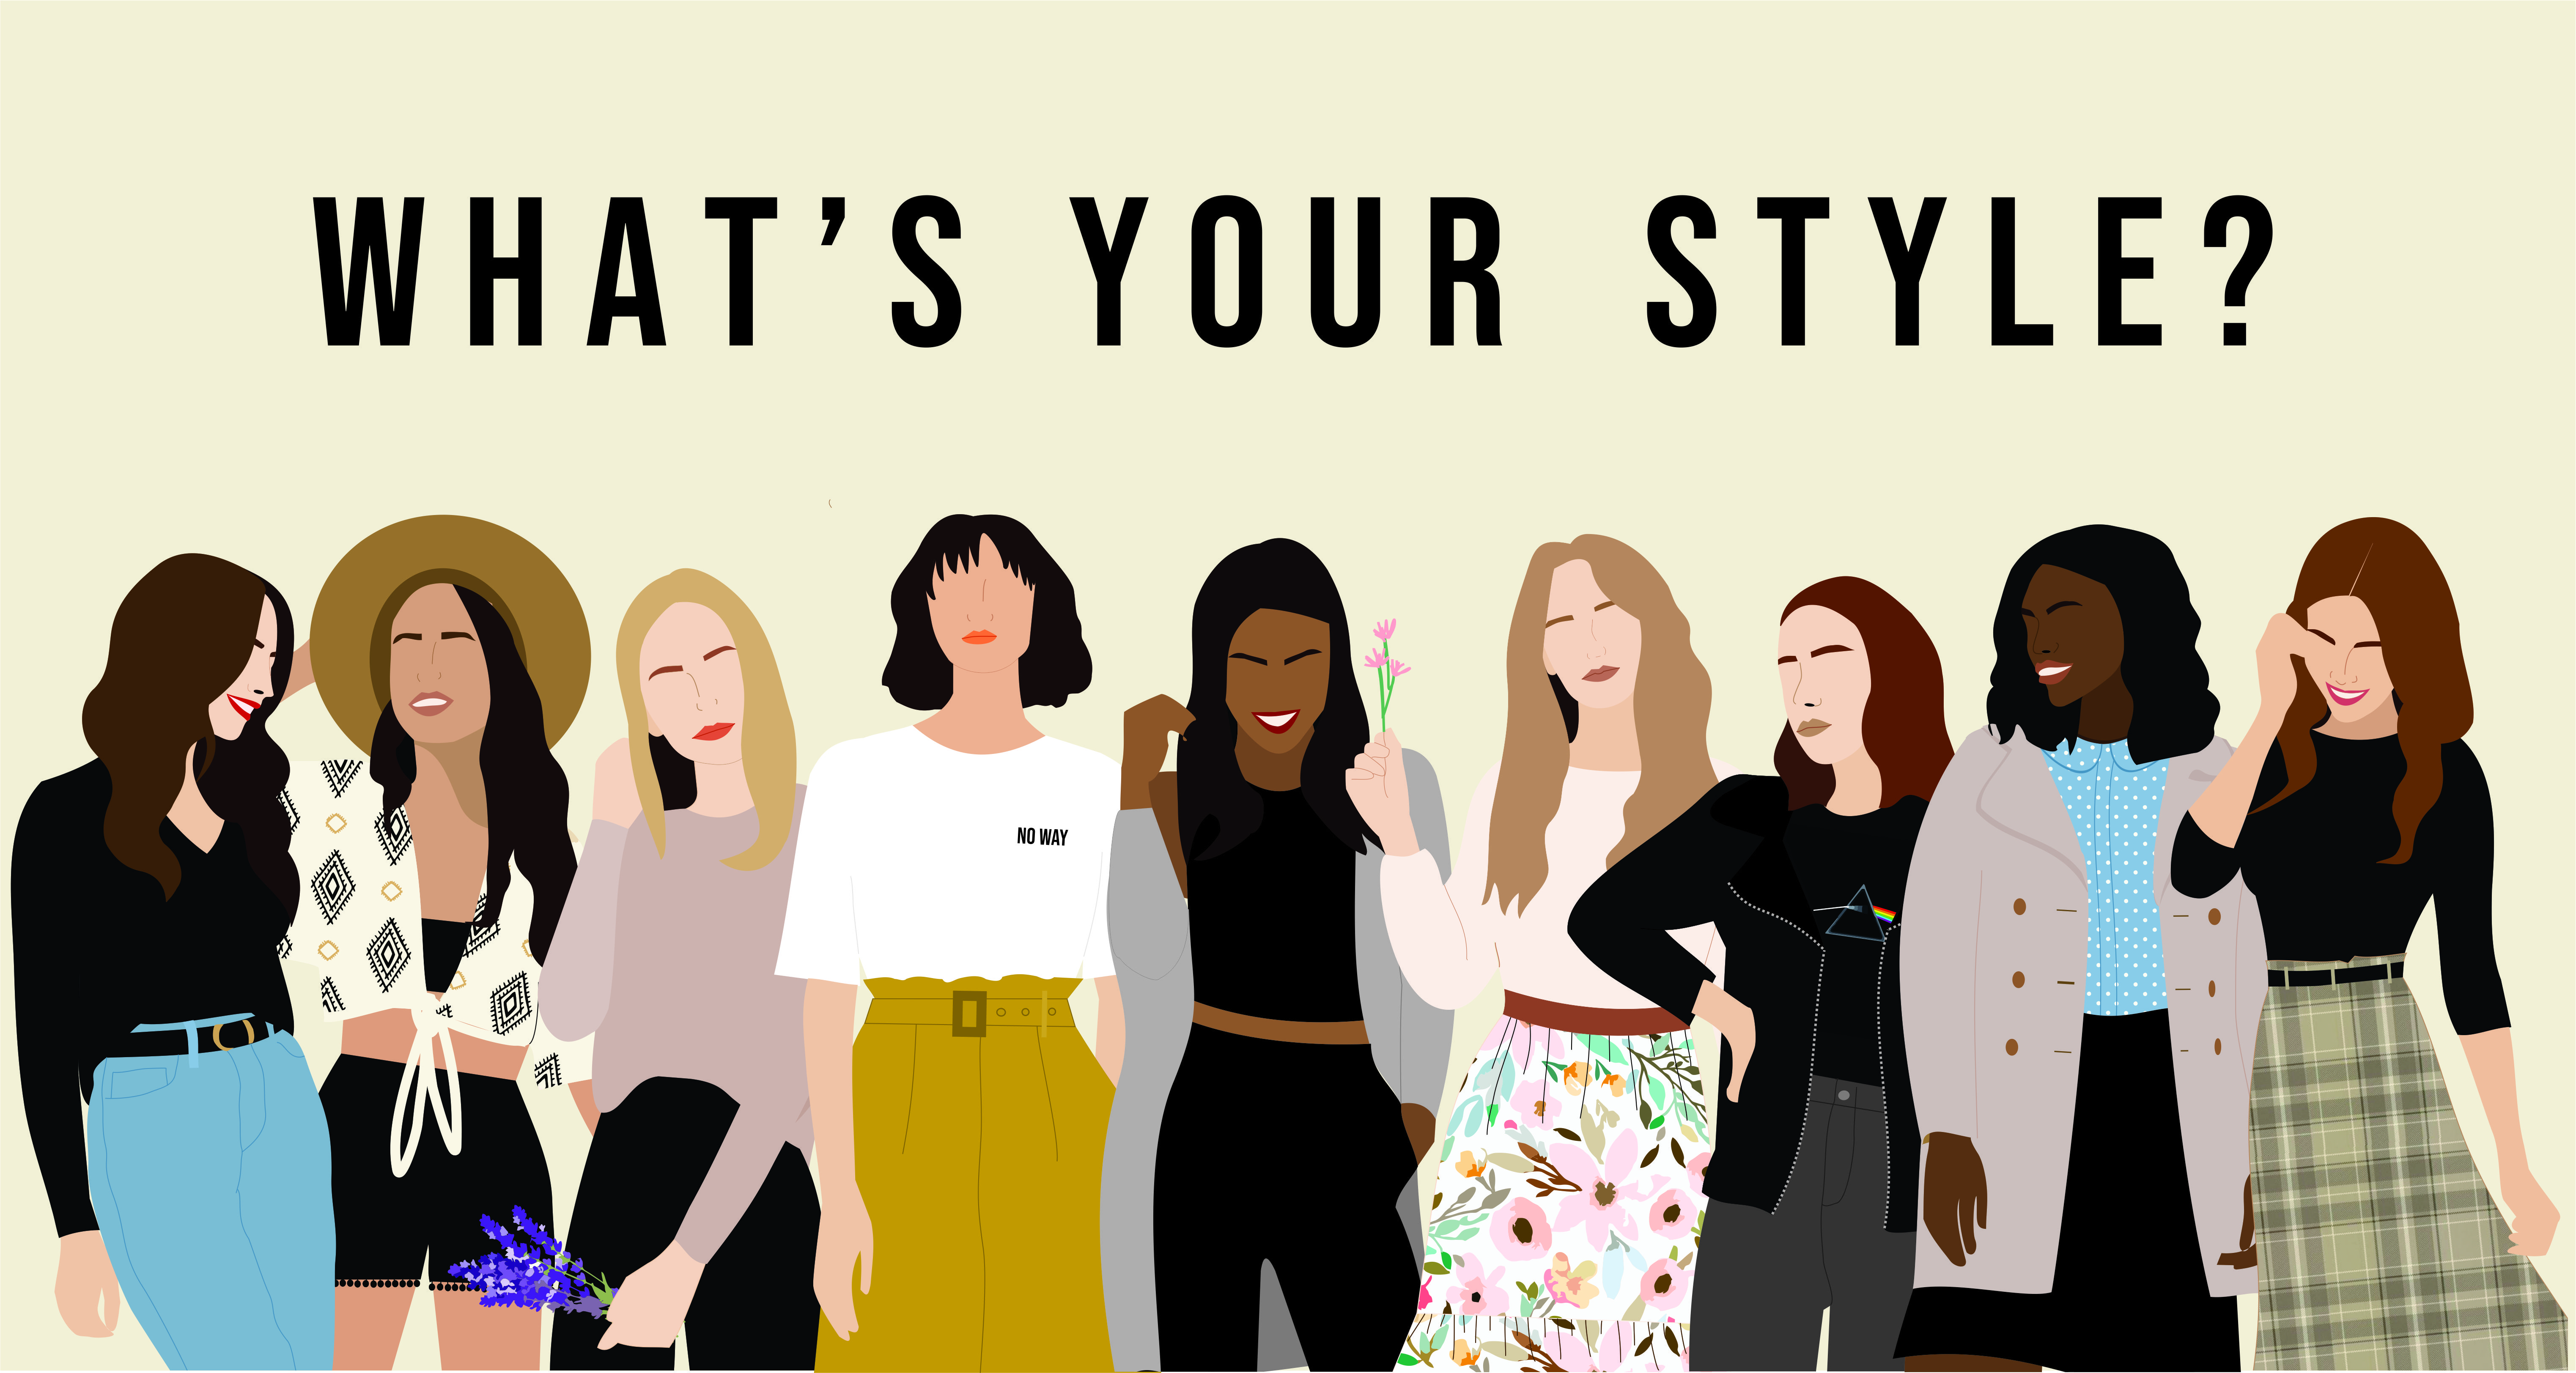 whats your style.jpg